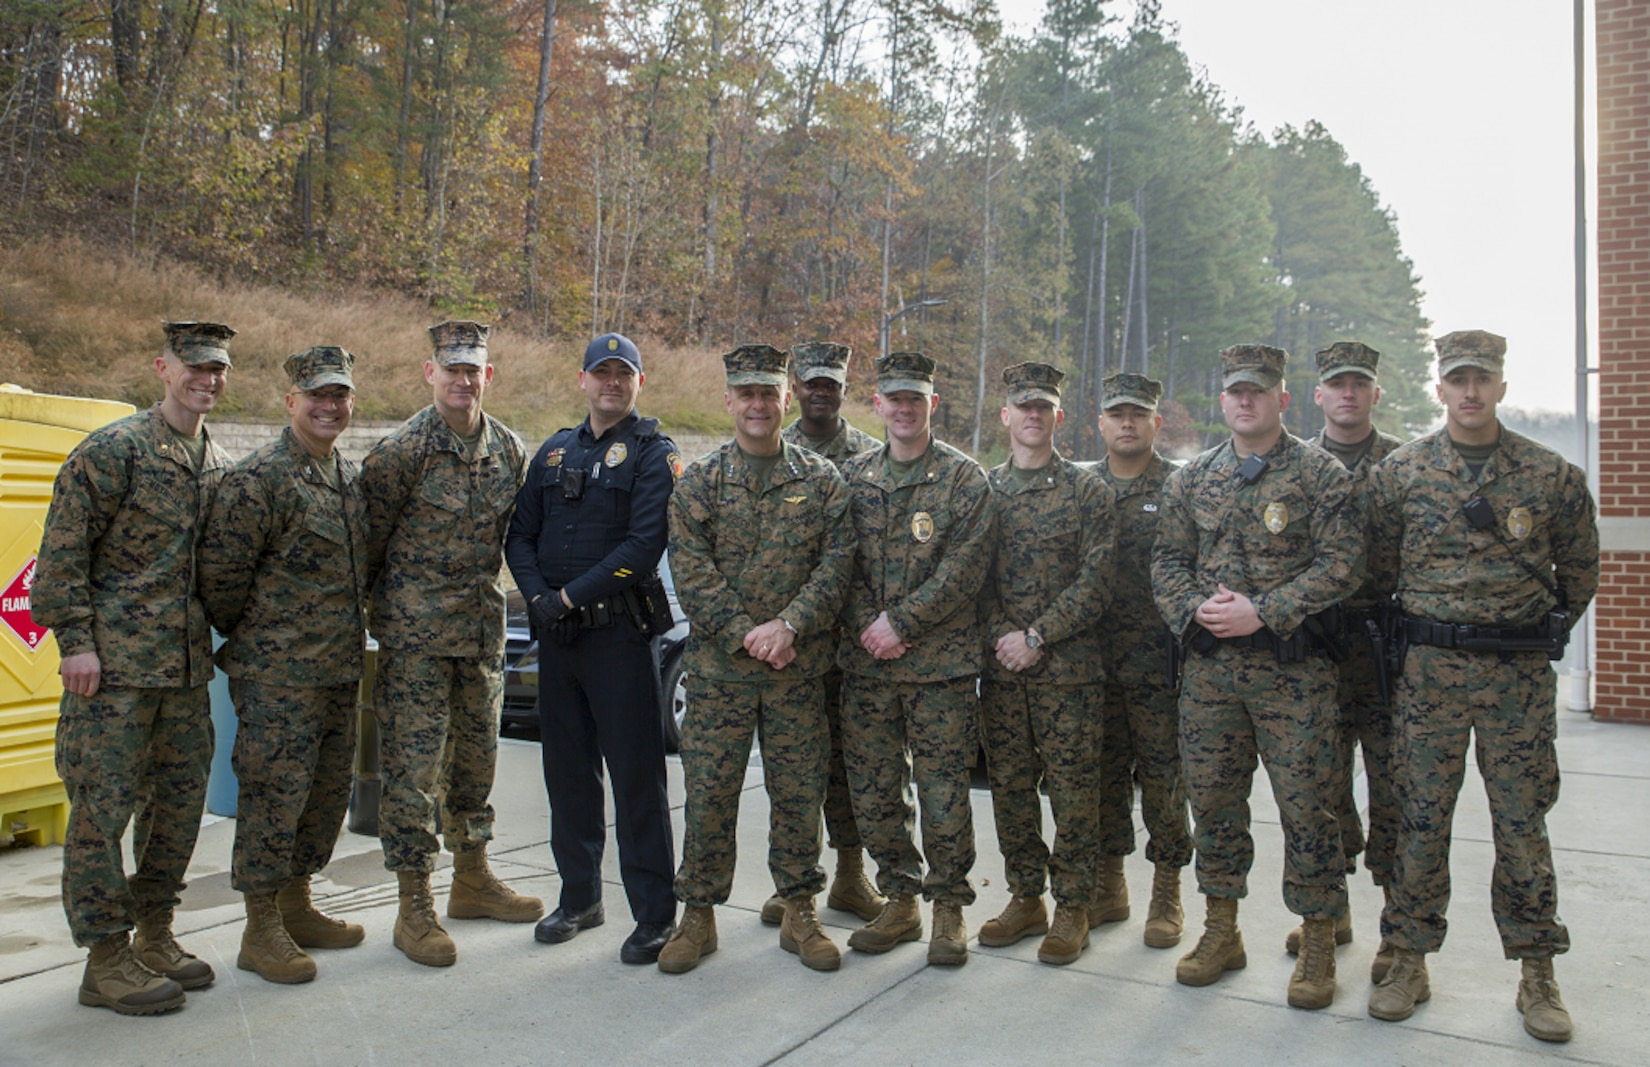 "Nov 19: Manpower & Reserve Affairs Commanding General, LtGen Rocco and SgtMaj Black standing with Marines and civilian officers from Security Battalion. Both the Commanding General and SgtMaj were greeting personnel aboard the installation and passing out ""Protect What You Have Earned"" cards at the gates prior to the Thanksgiving weekend."